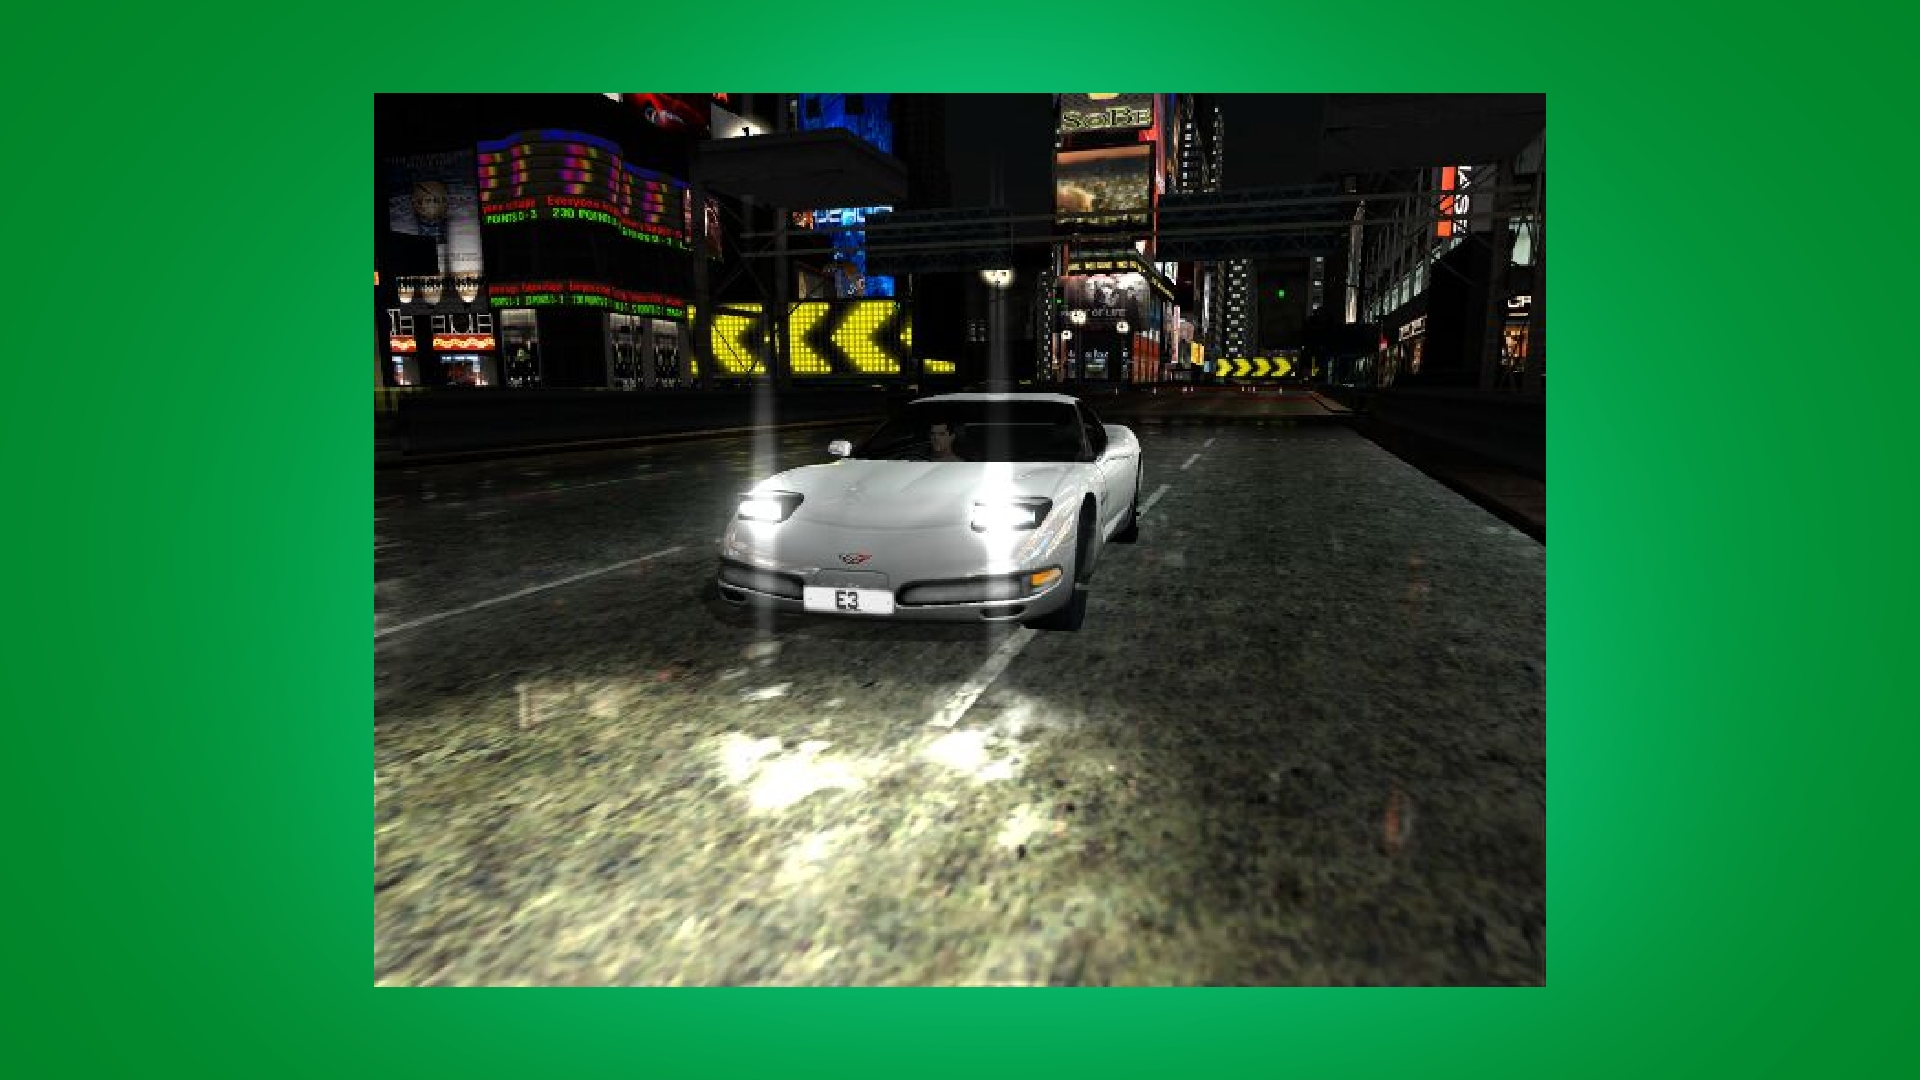 A car racing in the night in Project Gotham Racing